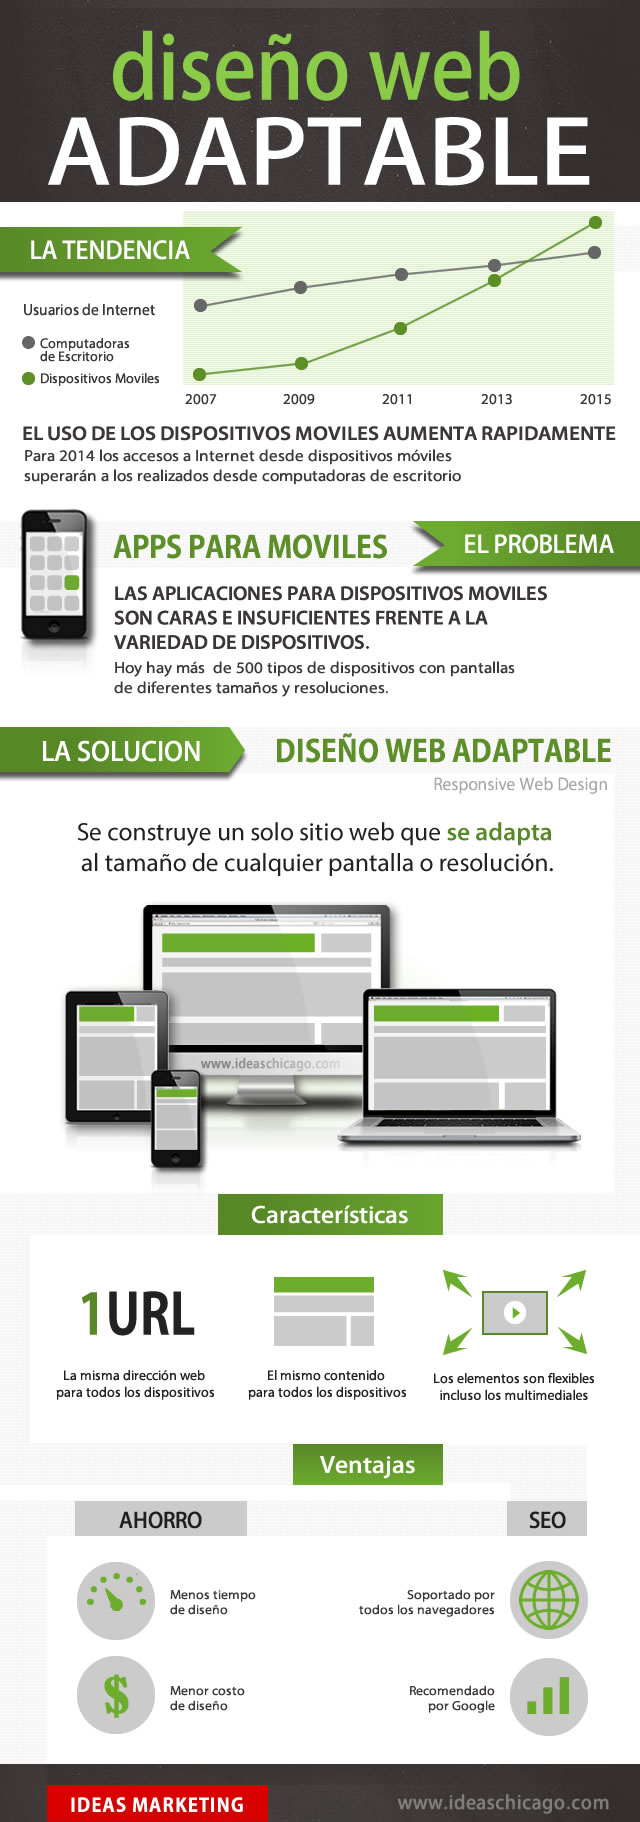 Diseño Web Adaptable